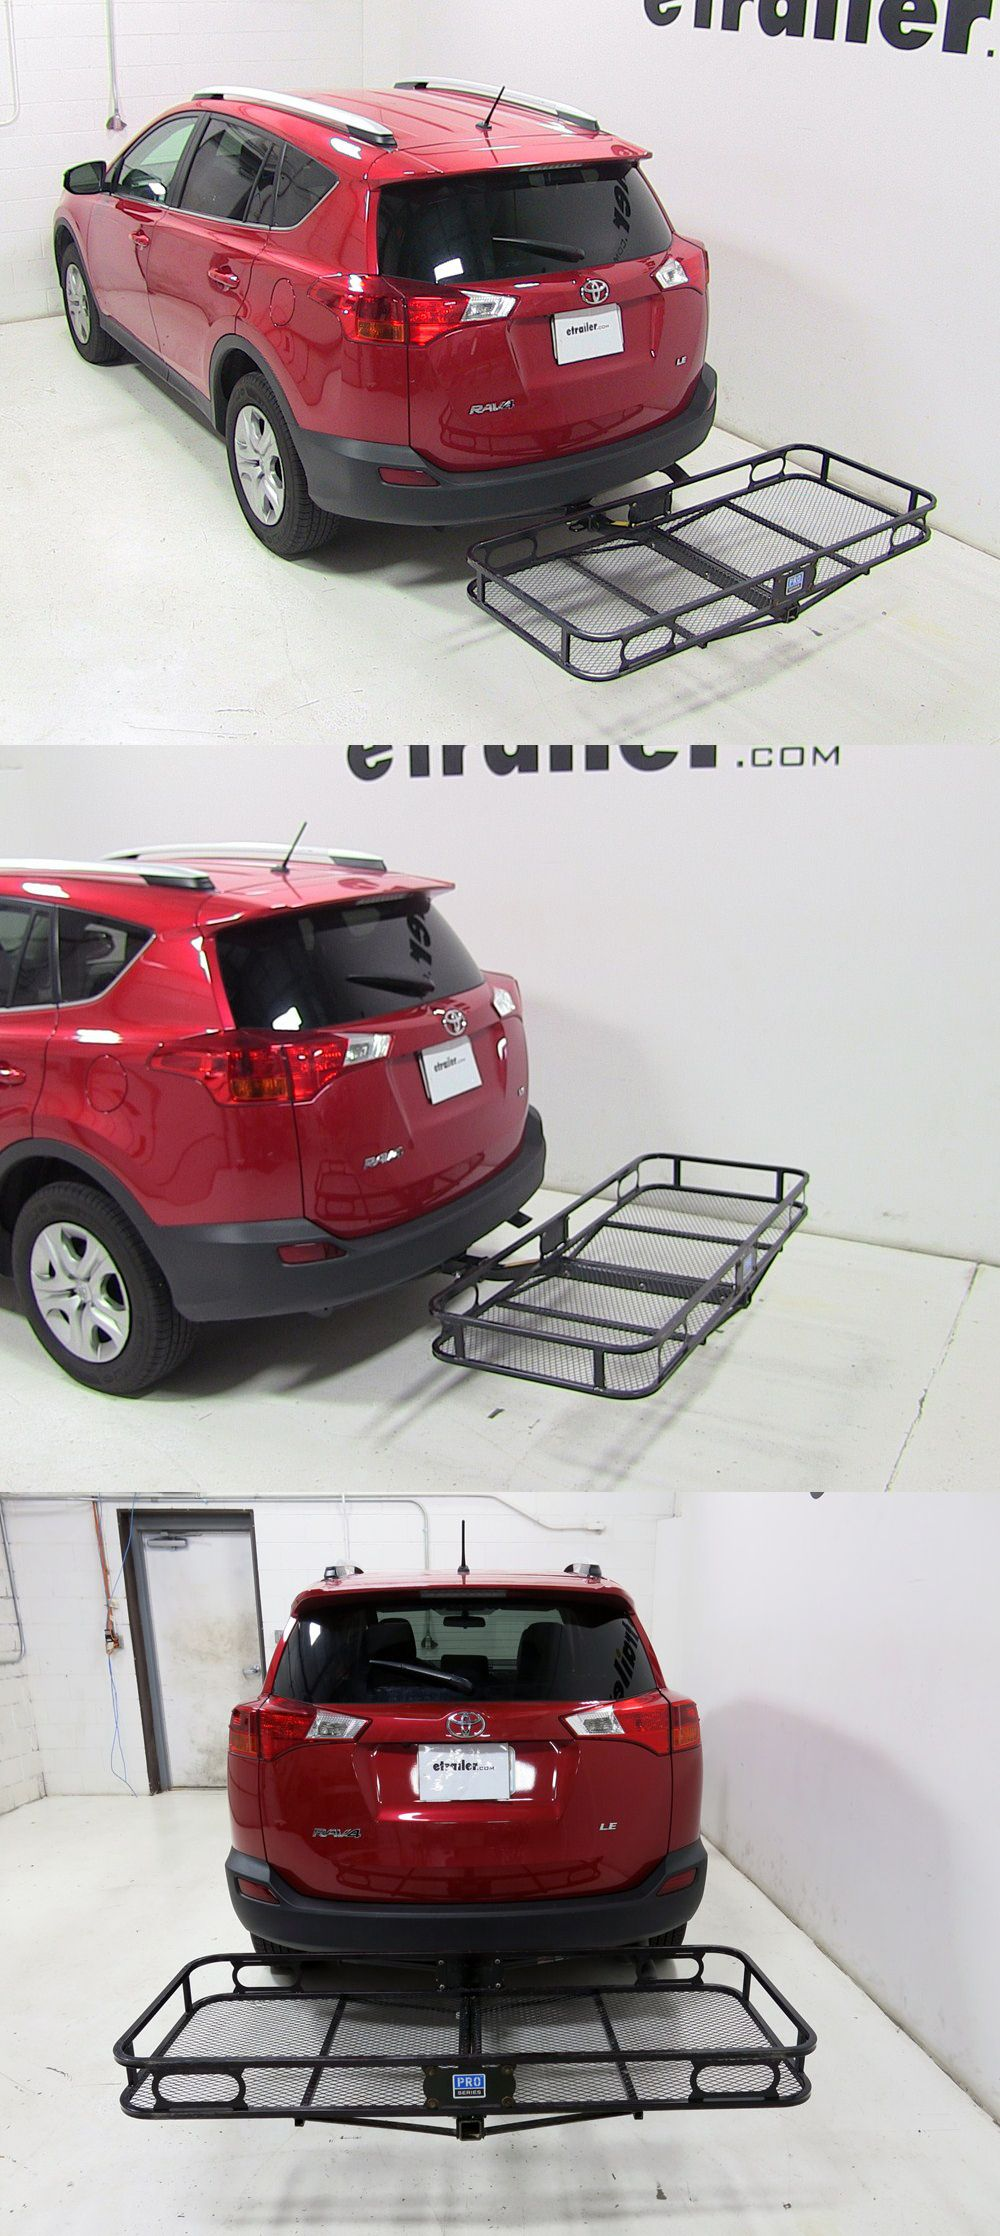 24x60 Reese Cargo Carrier For 2 Hitches Steel 500 Lbs Reese Hitch Cargo Carrier 63153 Hitch Cargo Hitch Cargo Carrier Cargo Carrier